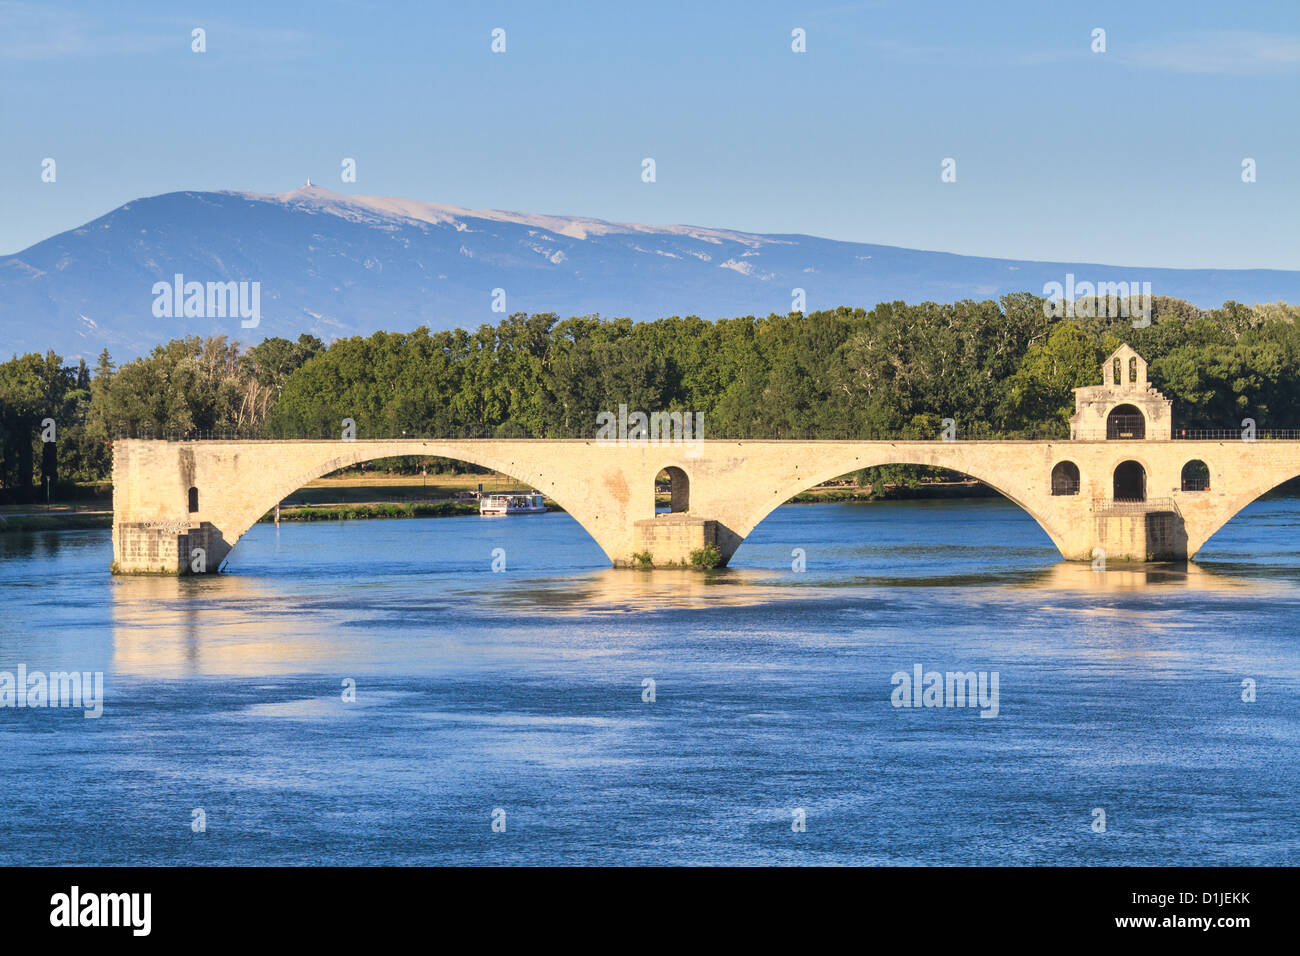 Avignon Bridge, Pont Saint-Bénezet, Provence, France - Stock Image